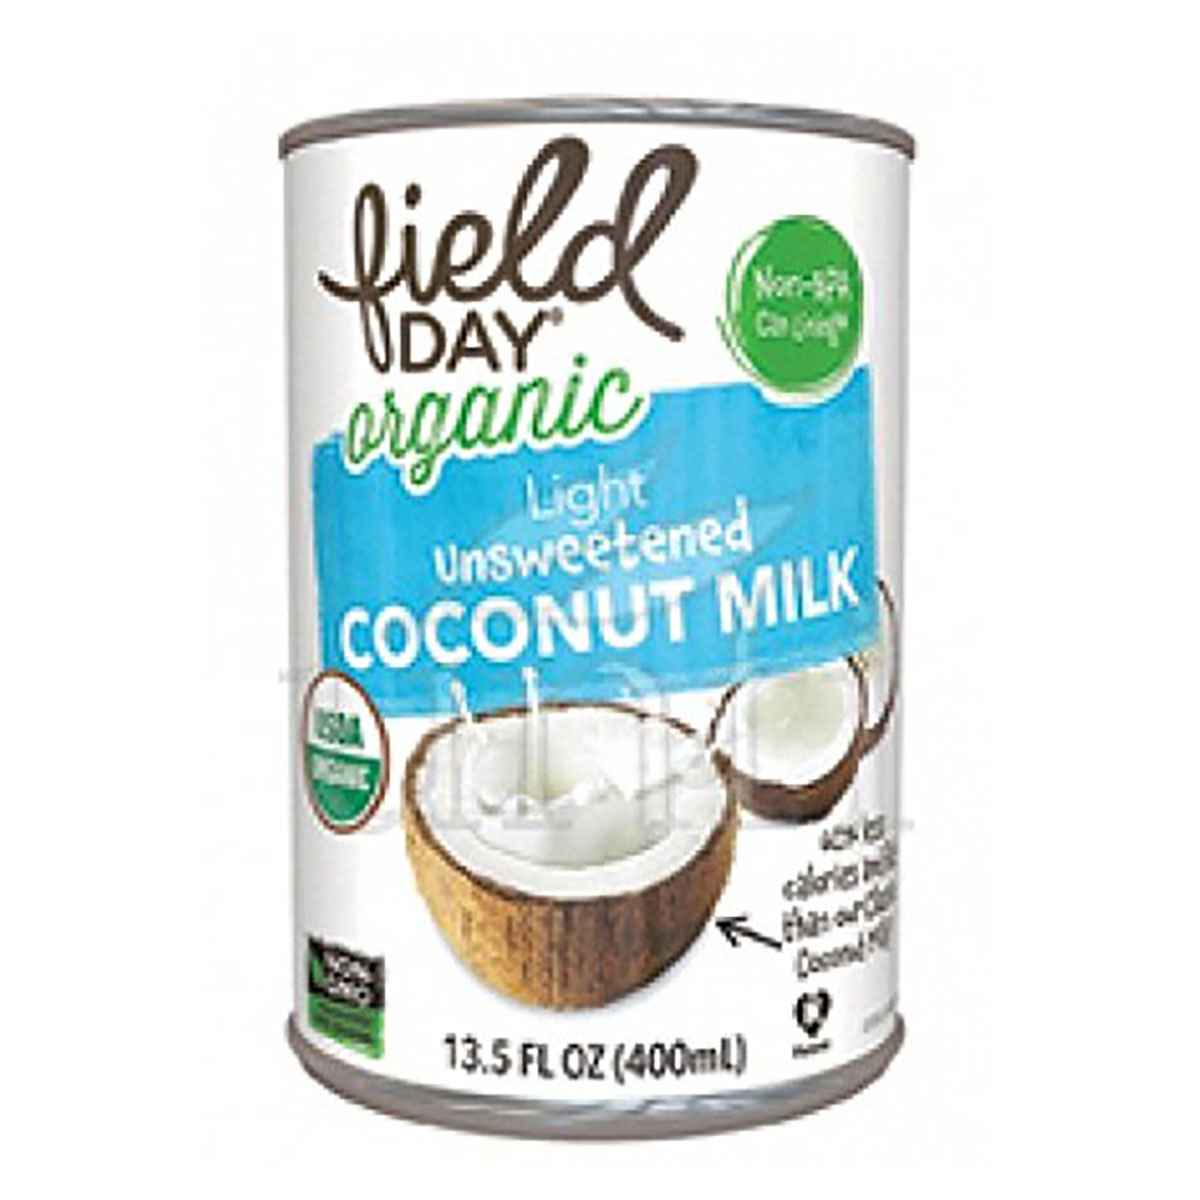 Field Day Organic Coconut Milk; Light Unsweetened - (Case of 12 - 13.5 fl oz)